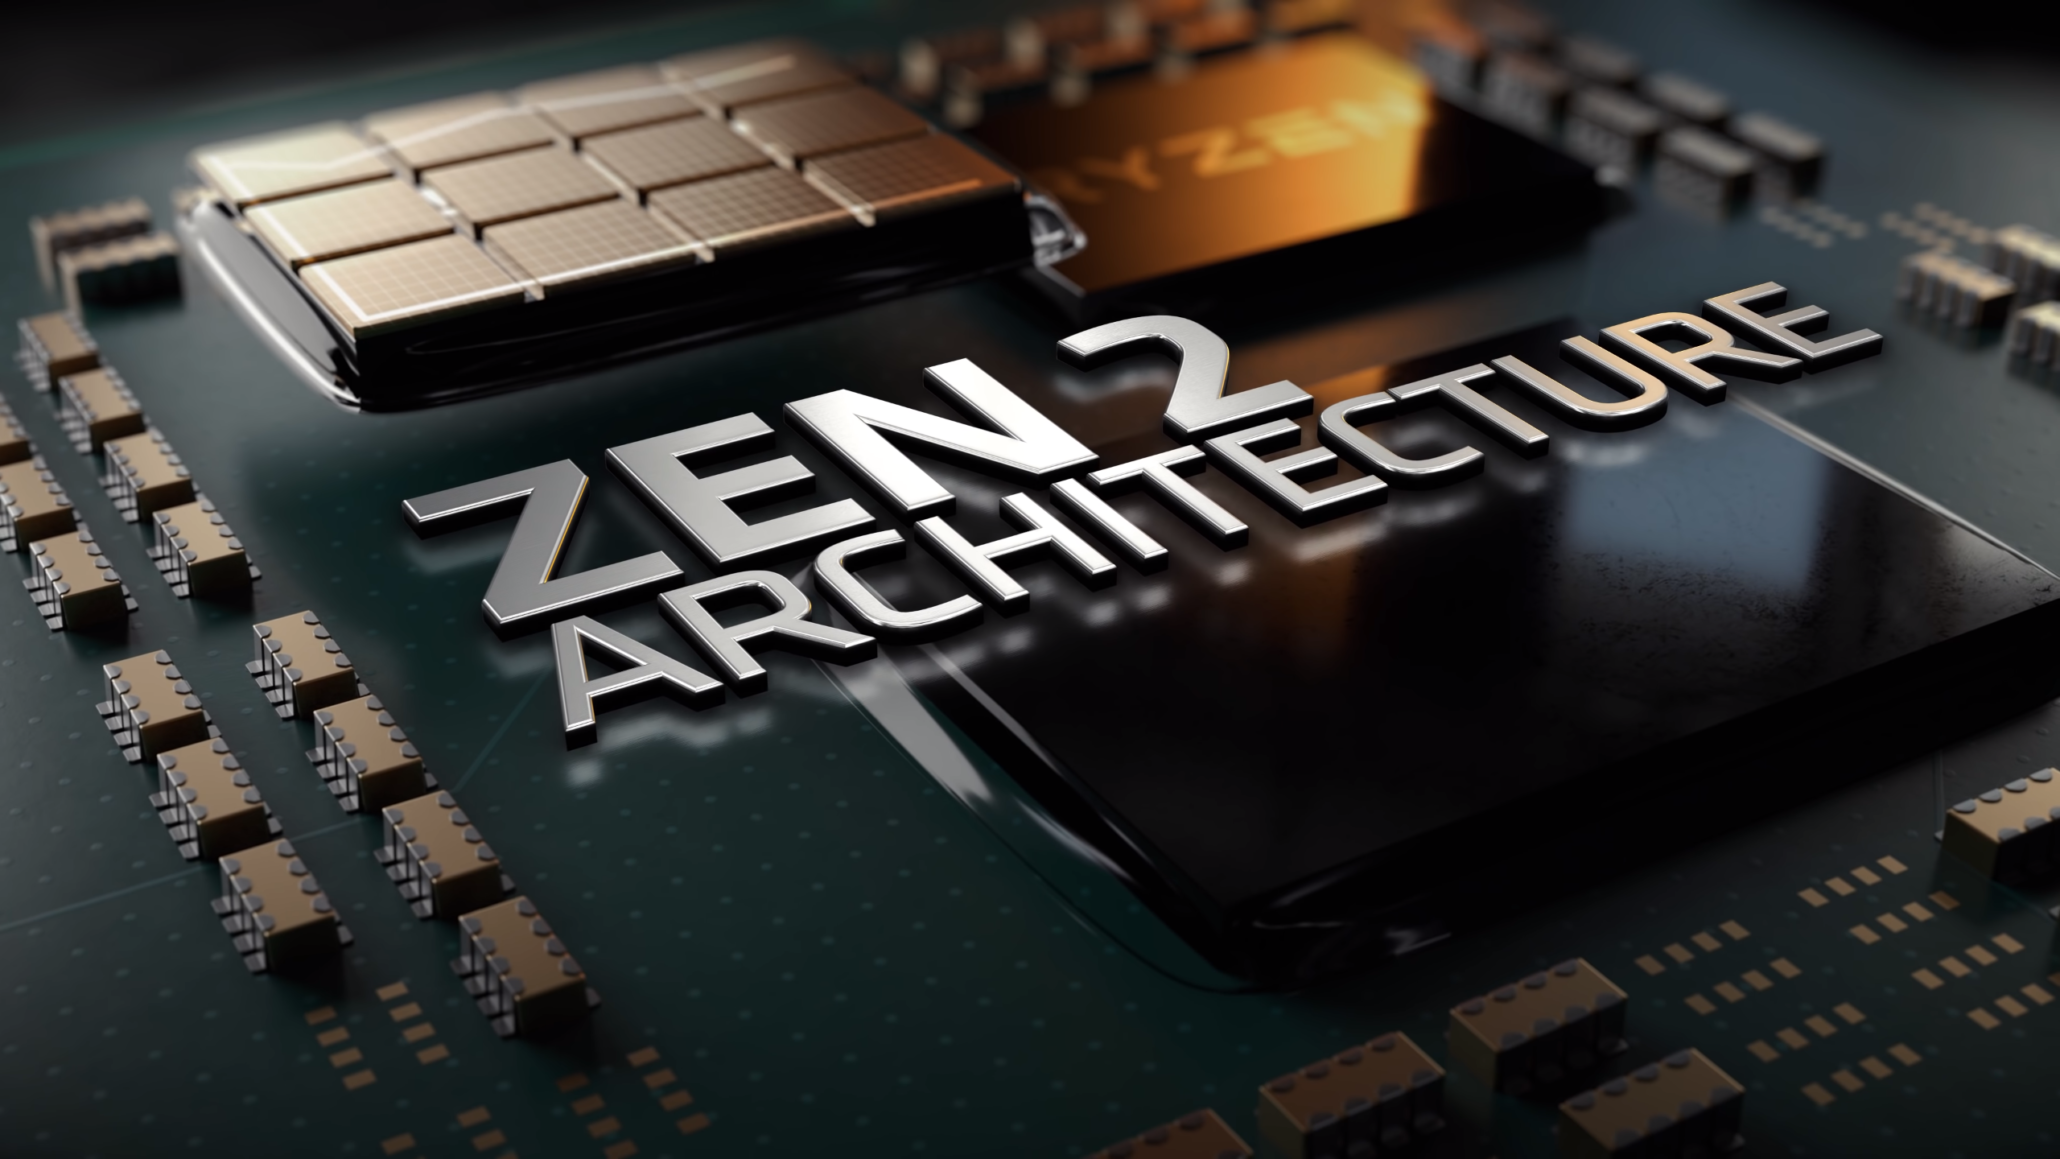 Amd Ryzen 9 3950x 16 Core Overclocked To 5 Ghz 5100 Ddr4 Memory